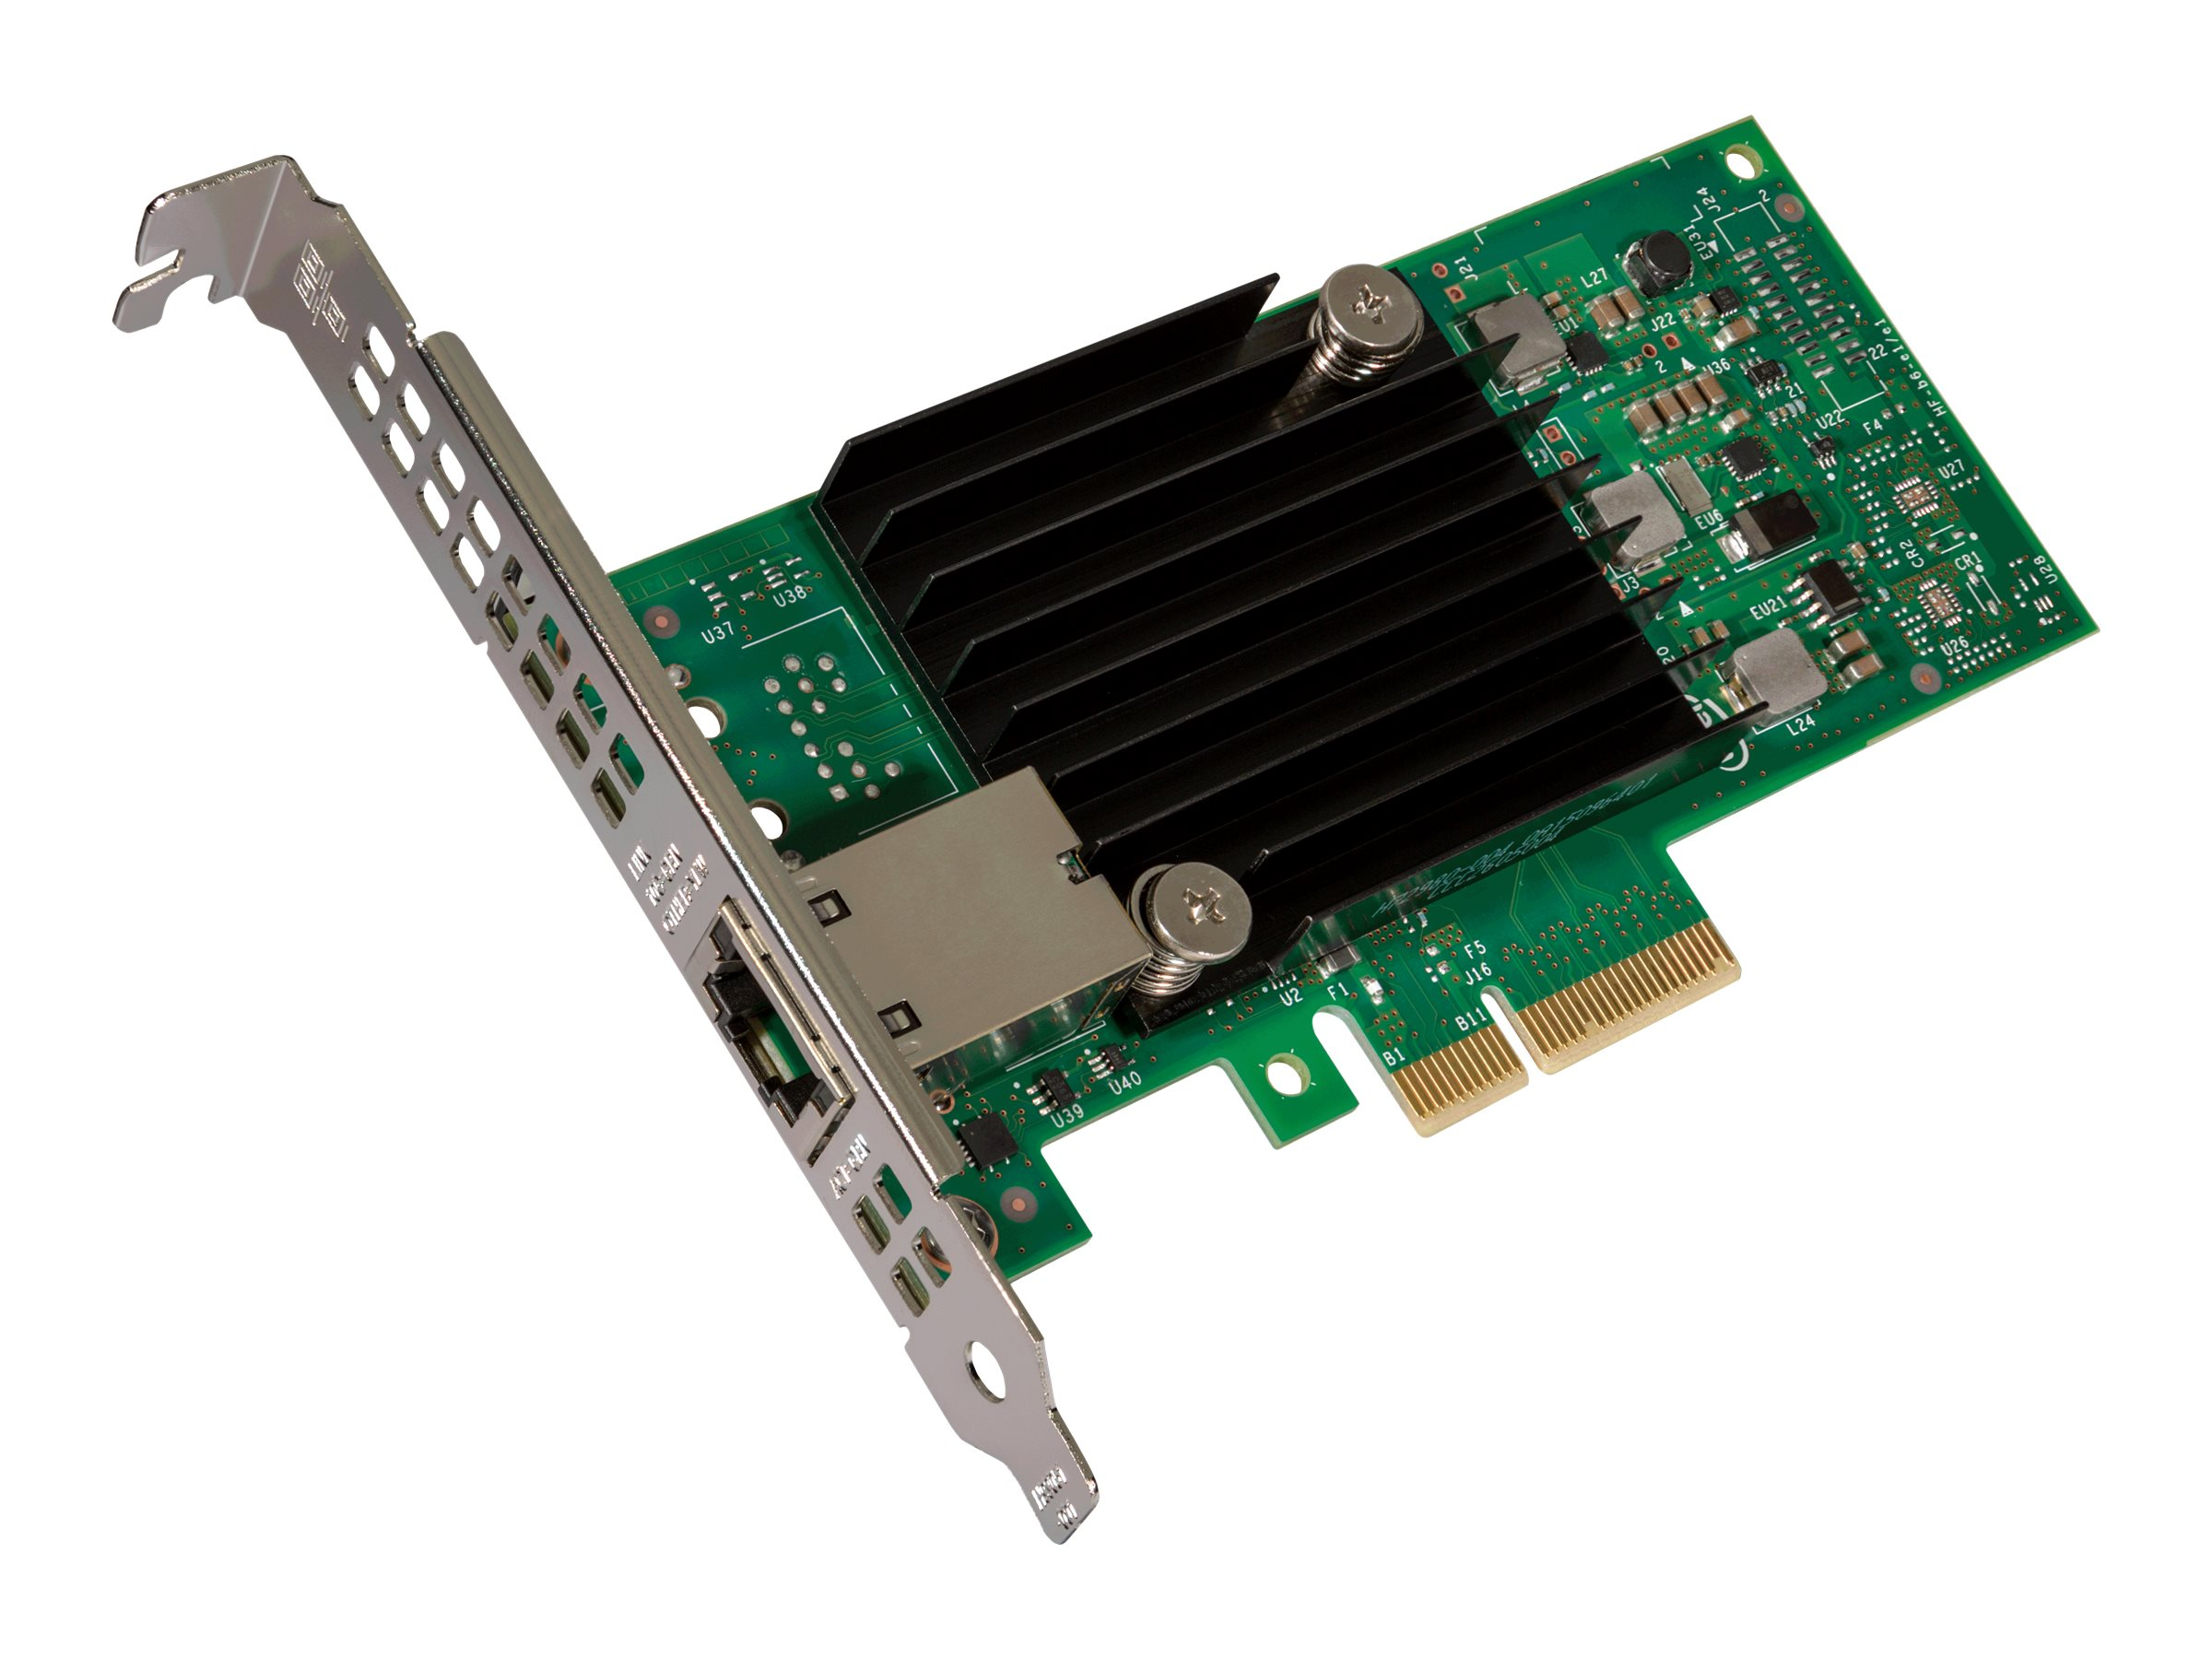 Intel Ethernet Converged Network Adapter X550-T1 - Netzwerkadapter - PCIe 3.0 Low-Profile - 10Gb Ethernet x 1